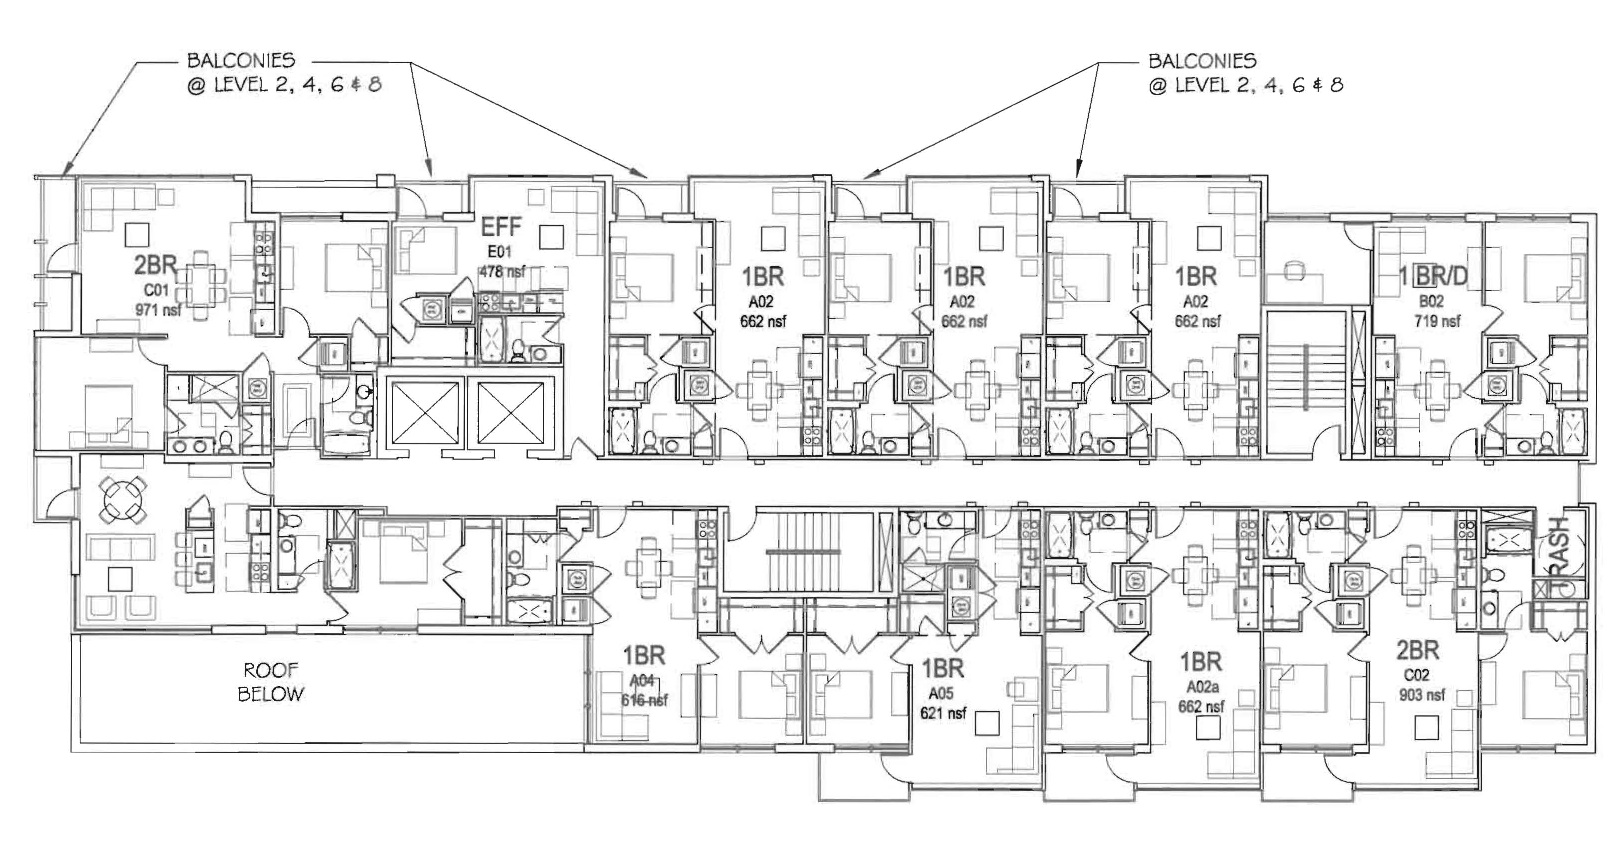 Revised plans for apartment building at 15th v for Apartment complex building plans